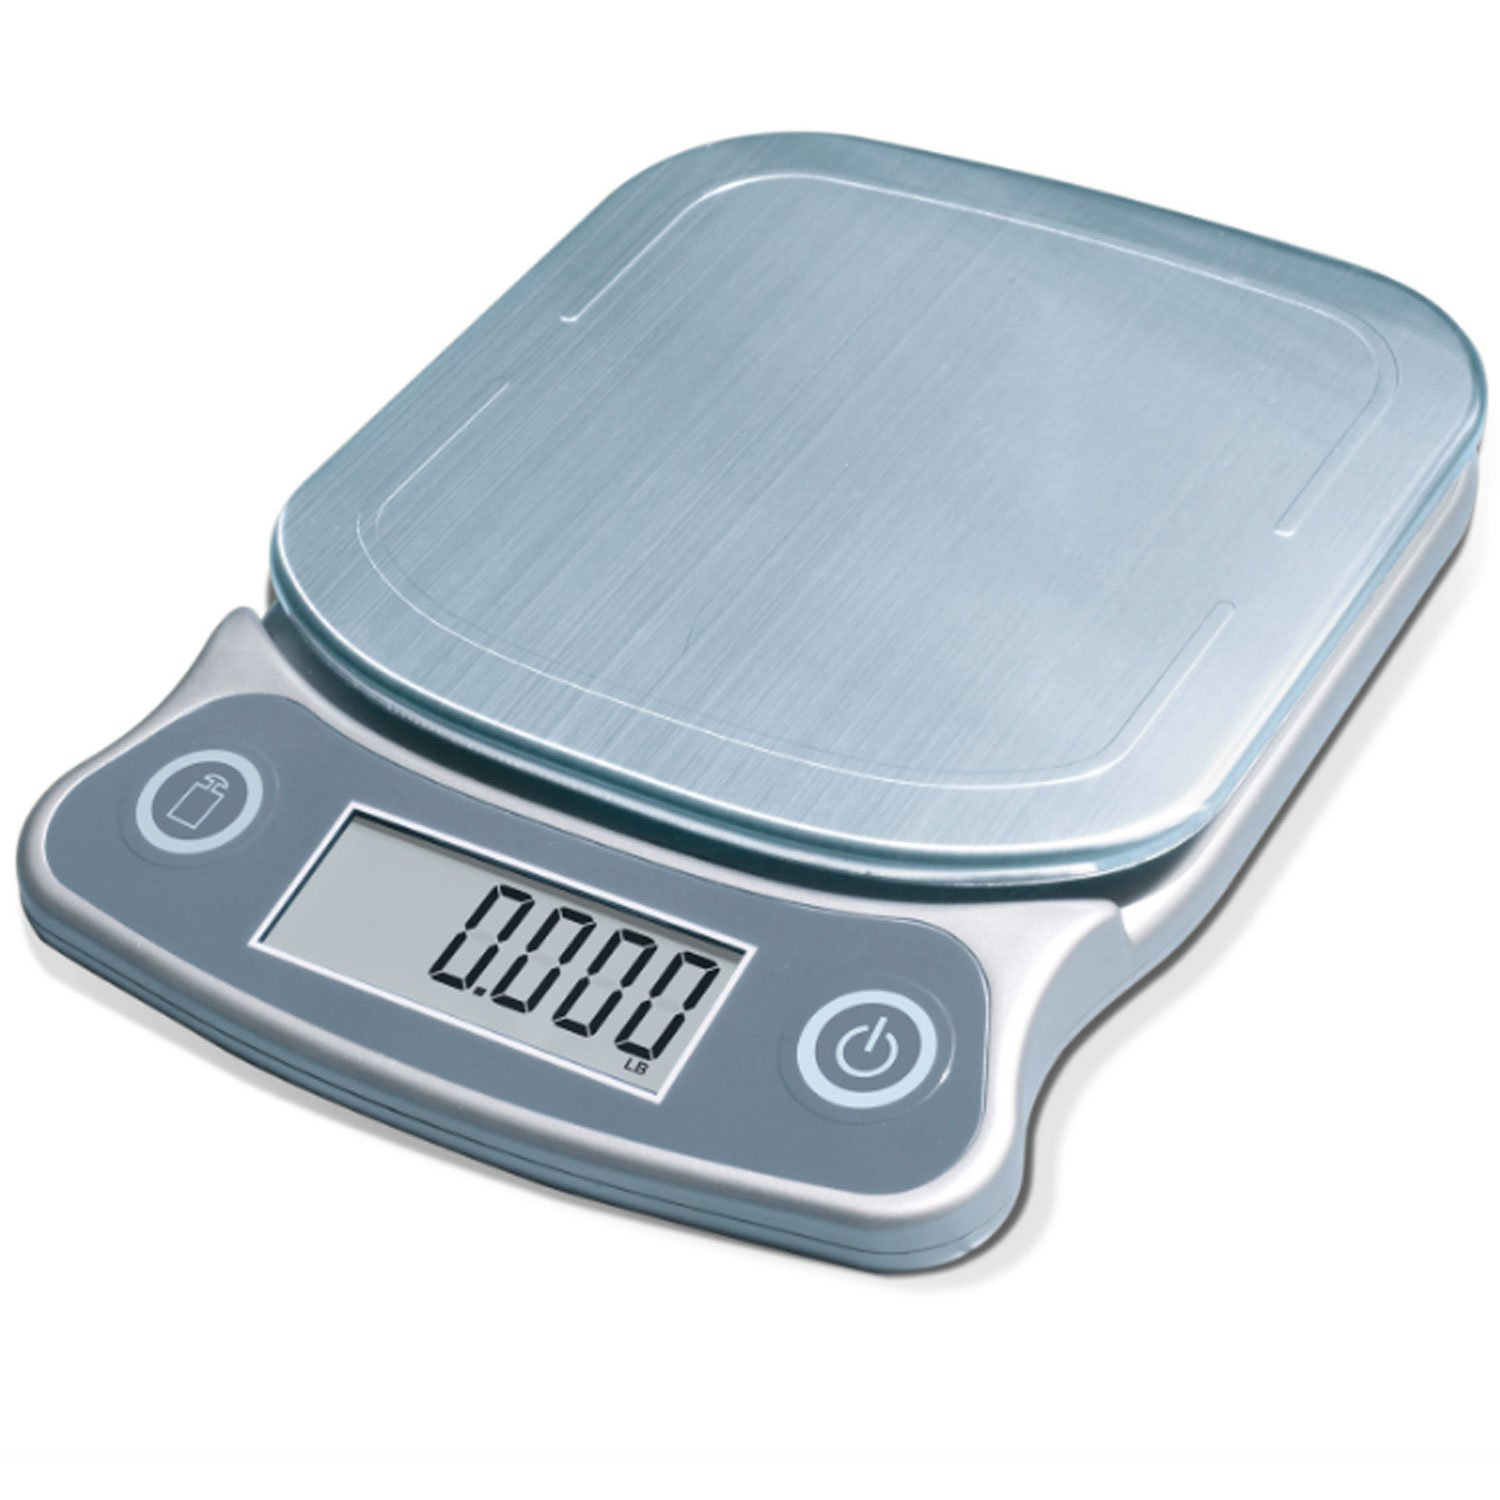 Eatsmart, precision elite digital kitchen scale